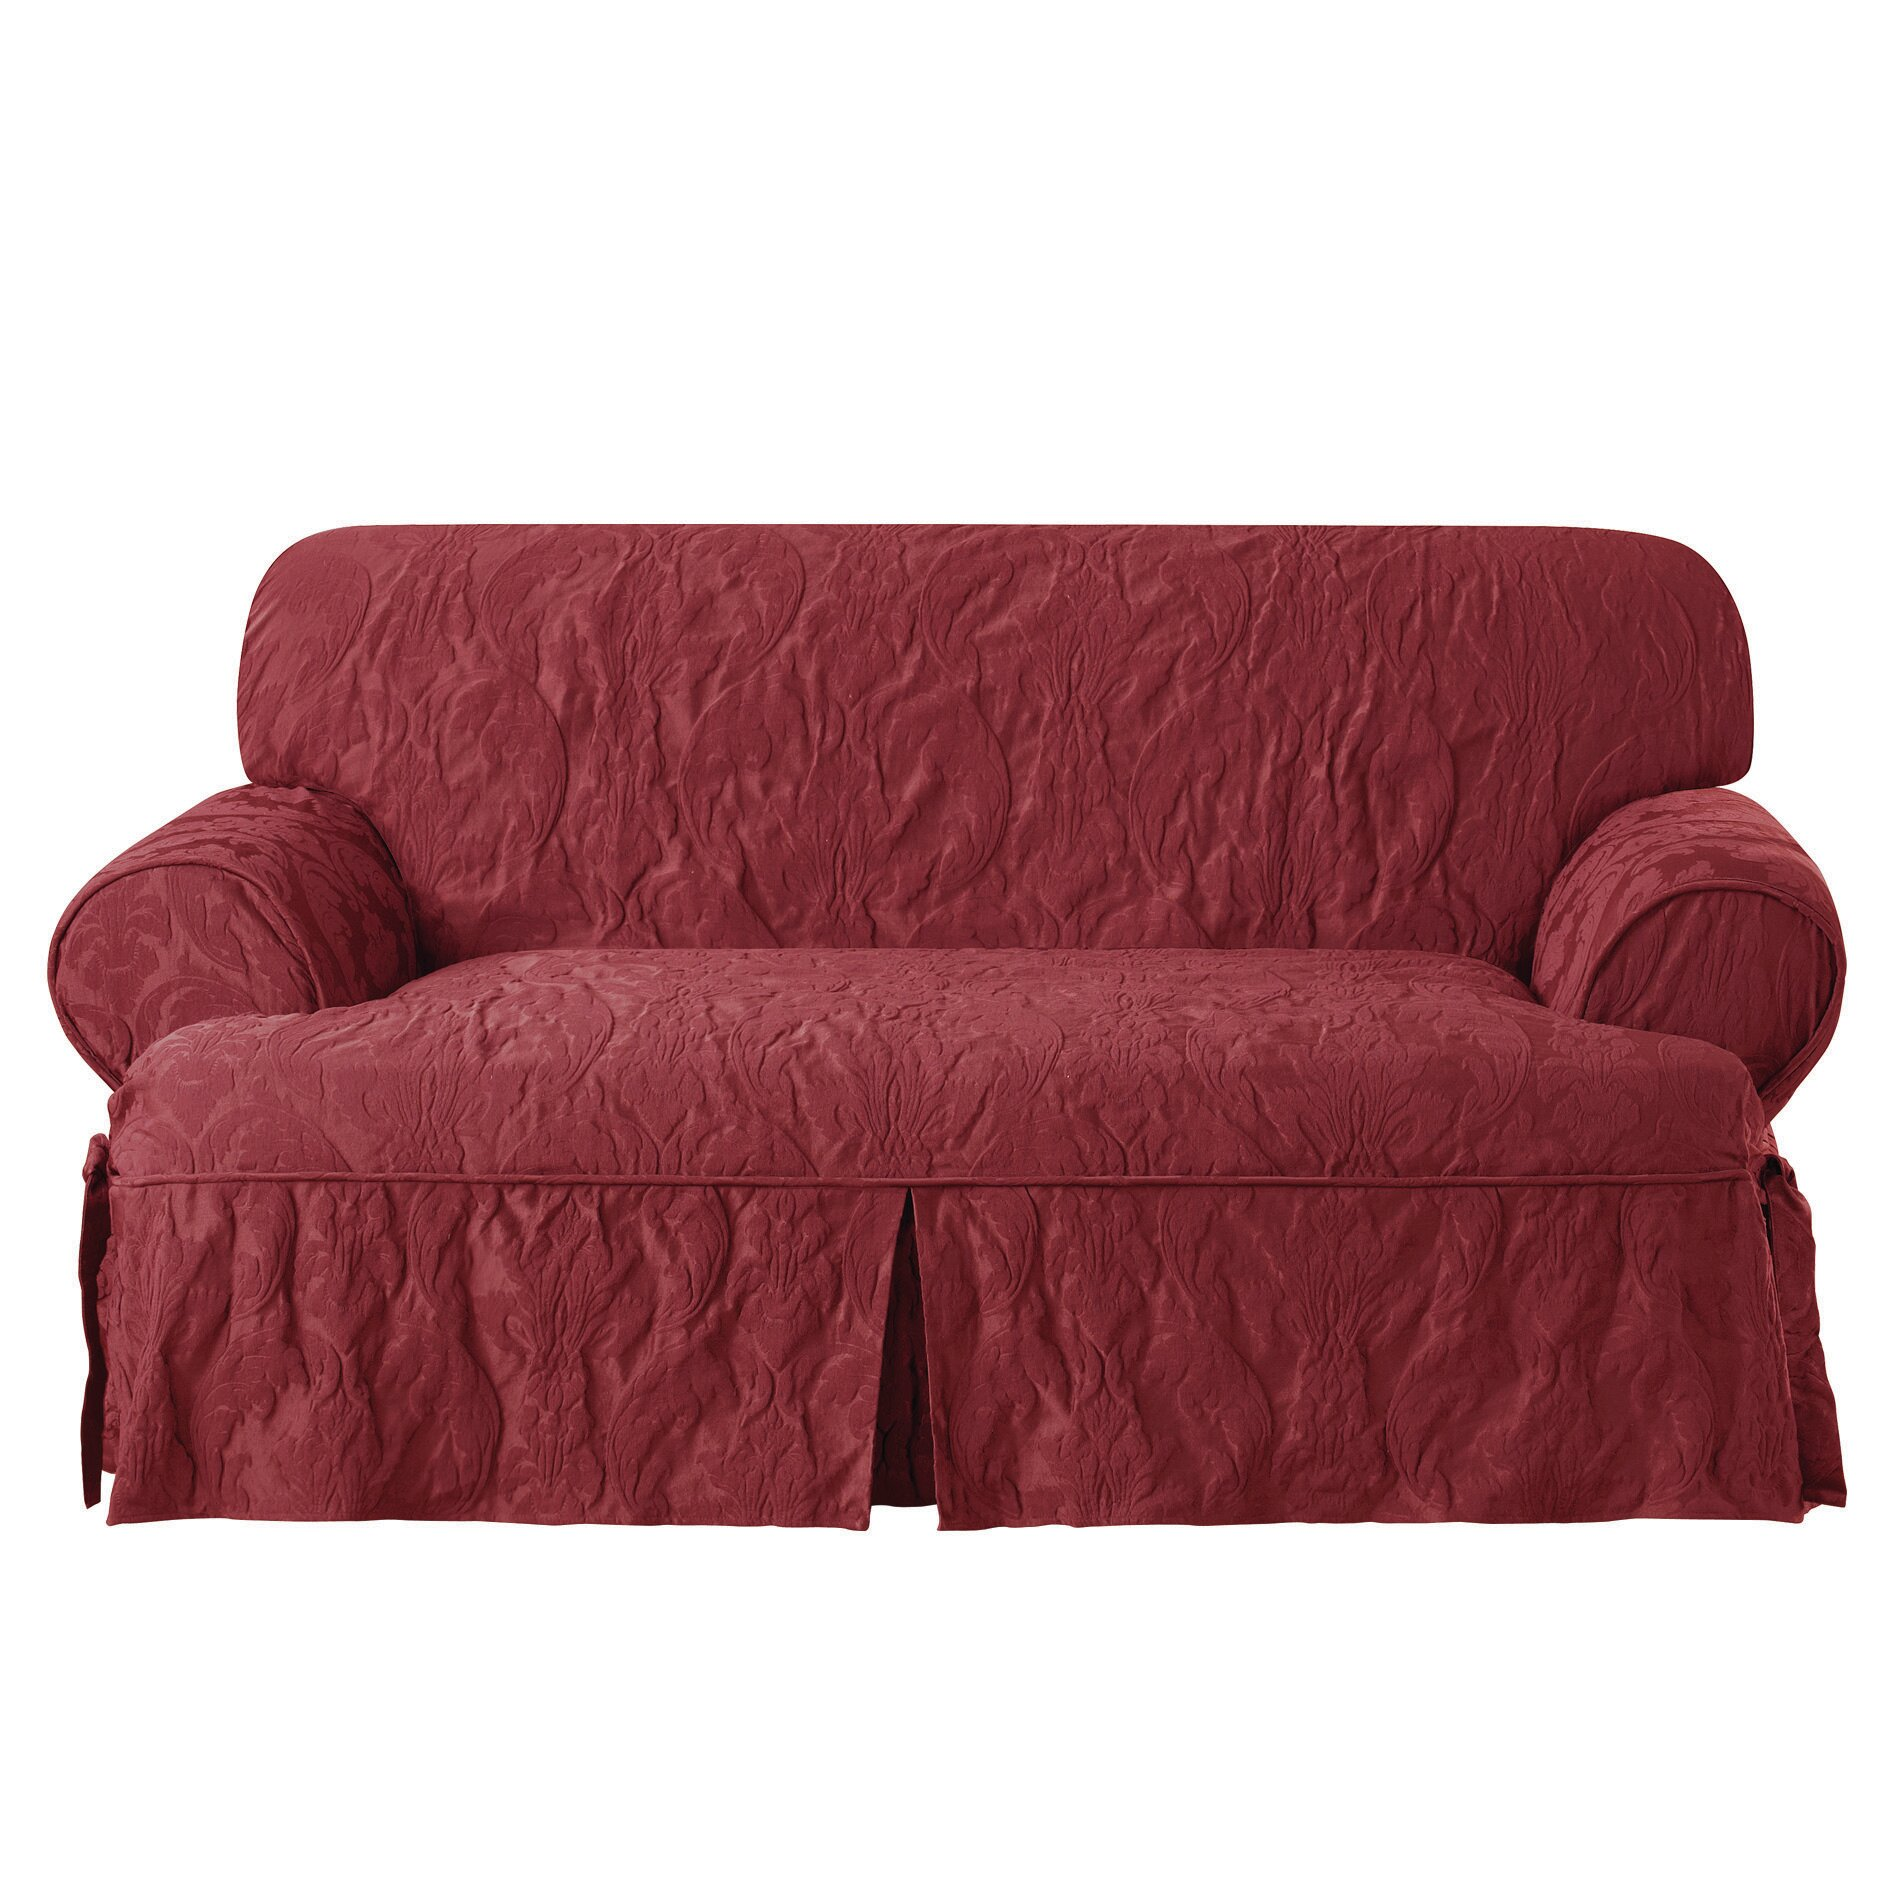 Sure Fit Matelasse Damask Loveseat T Cushion Slipcover